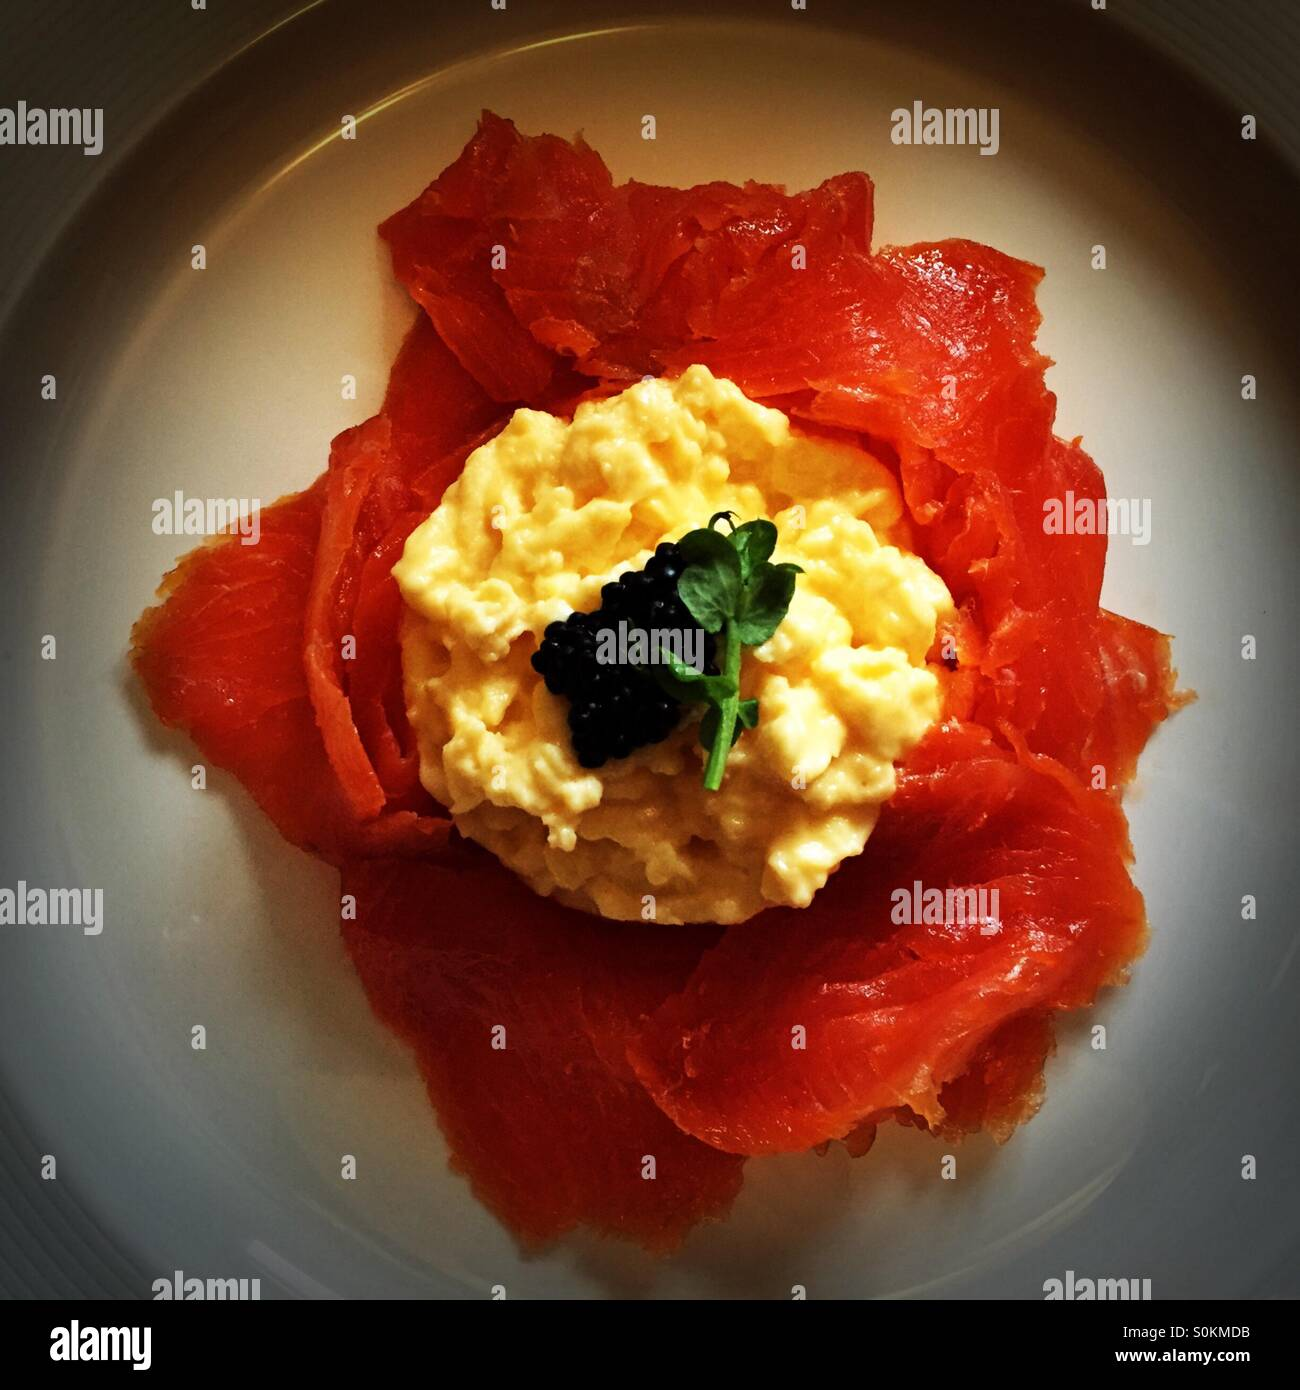 Smoked trout and scrambled egg for breakfast, on a plate. - Stock Image